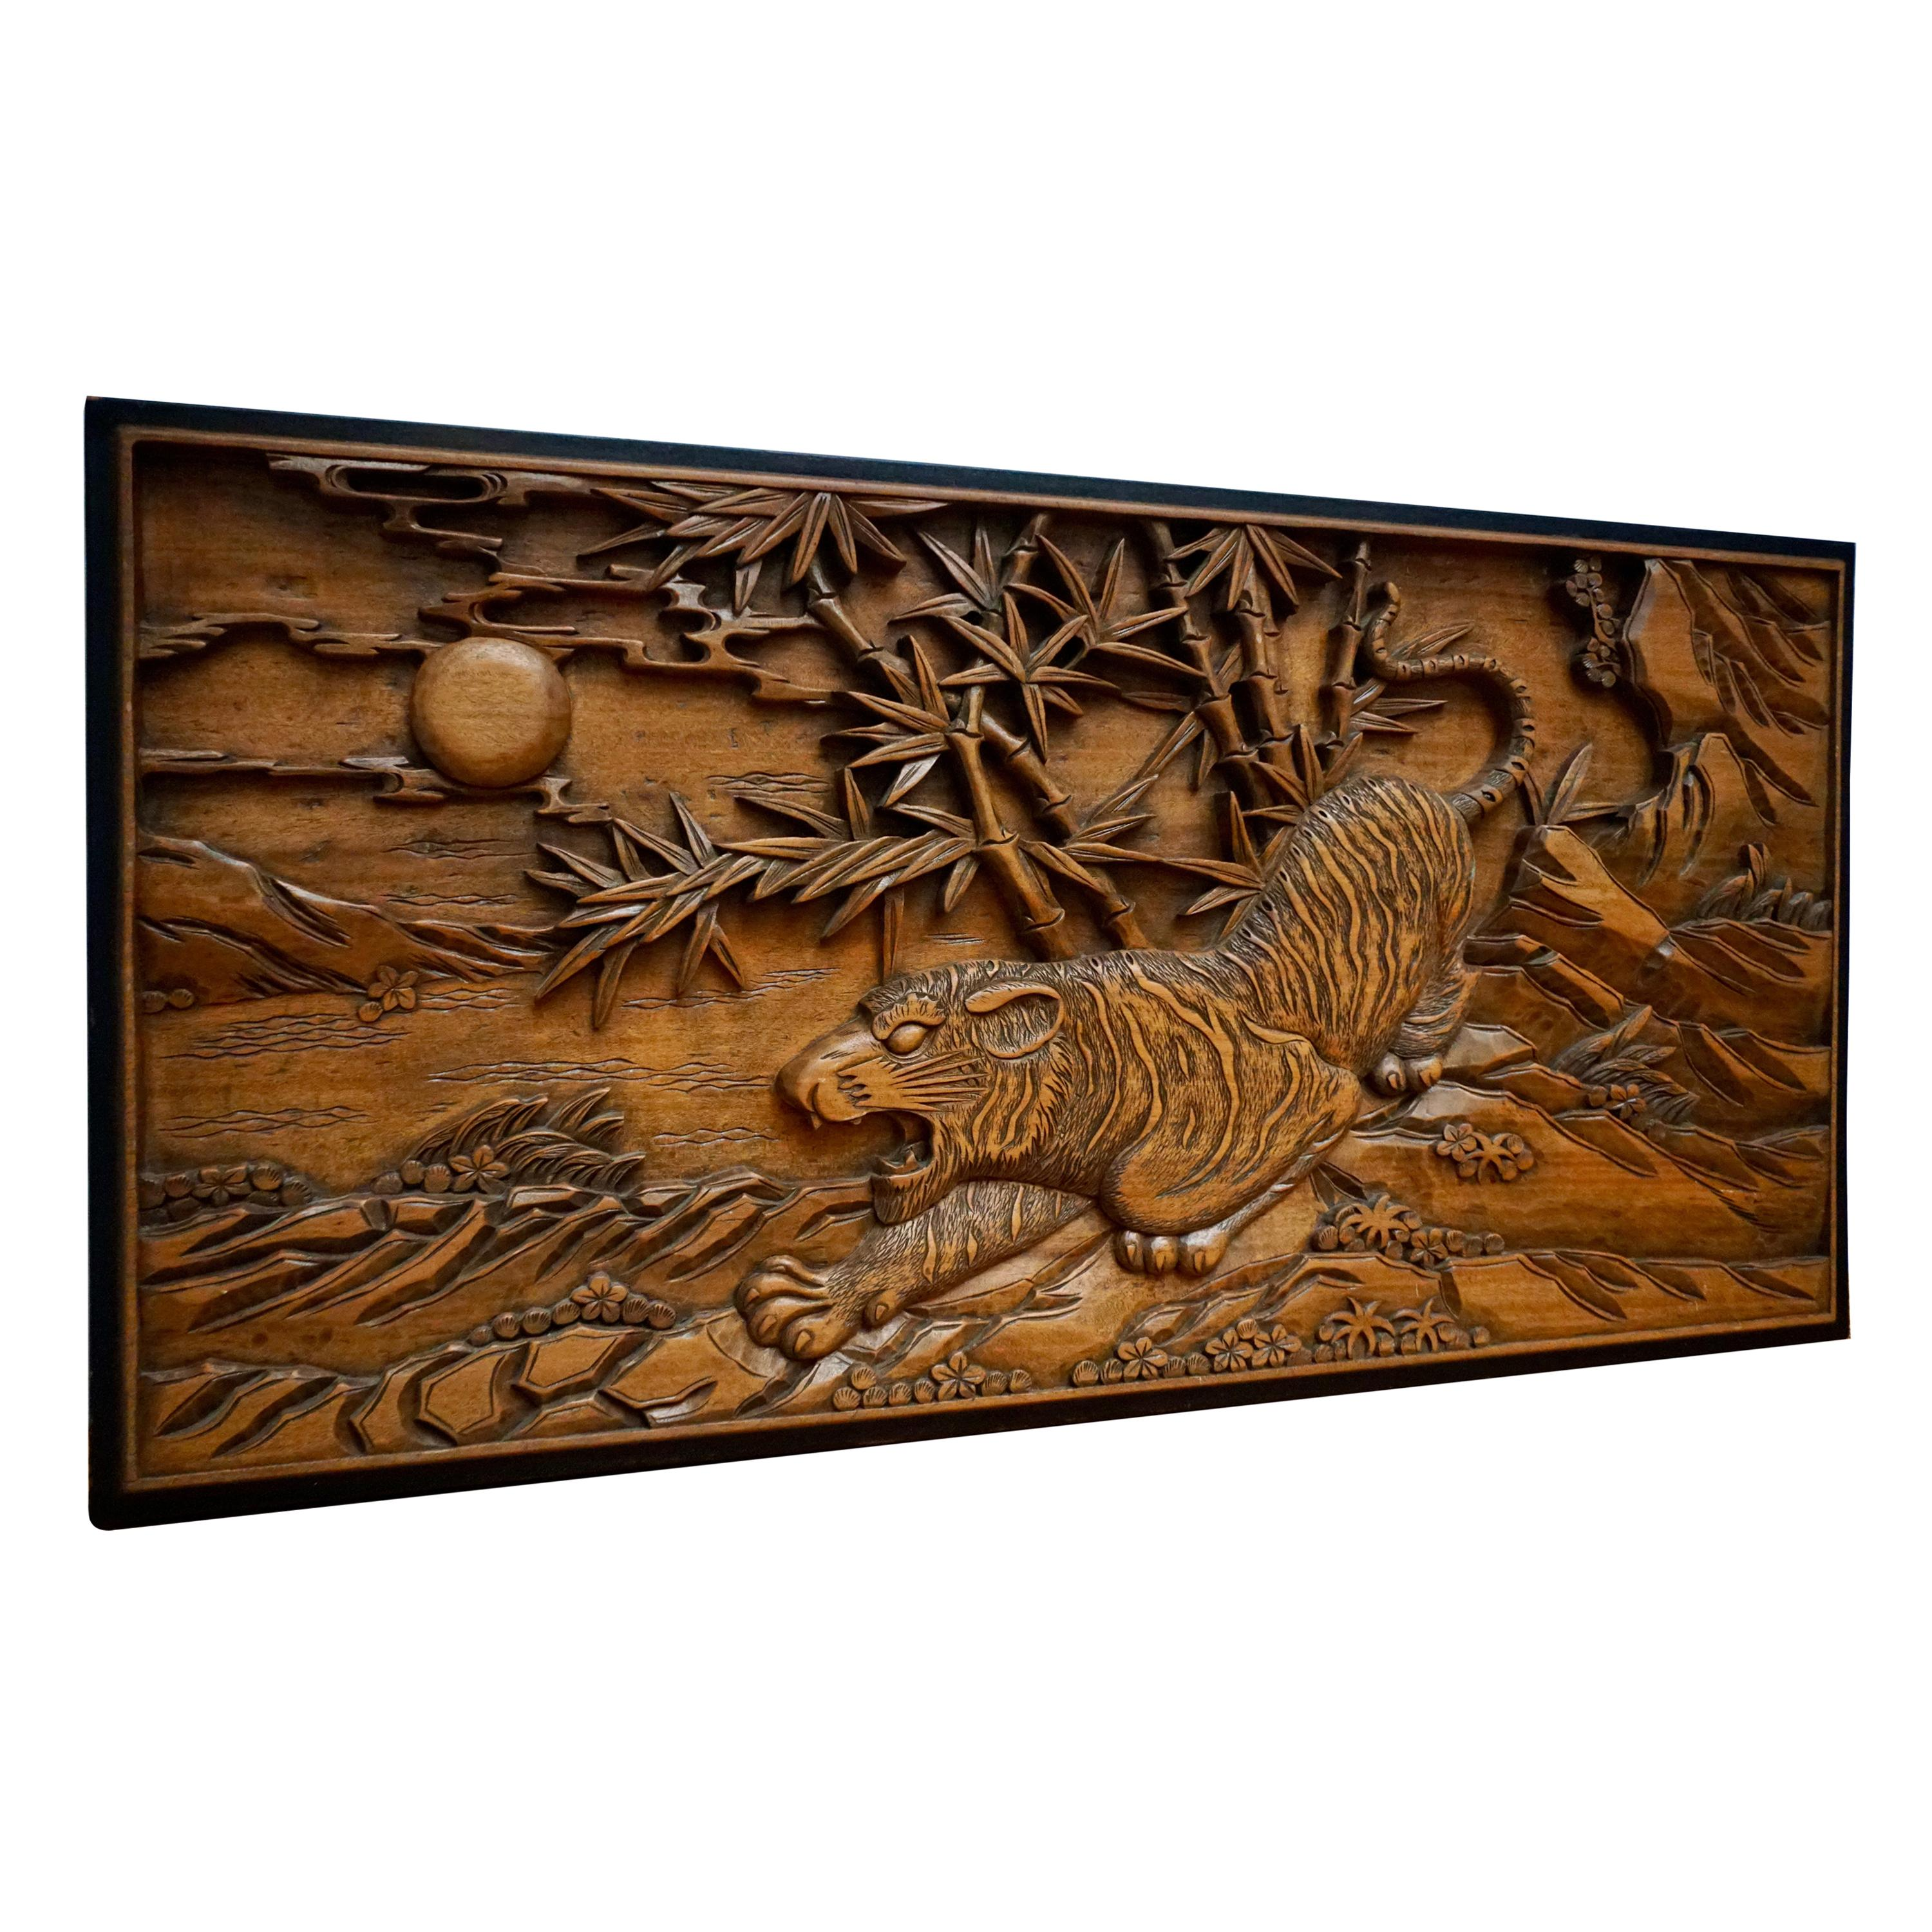 Chinese Carved Wood Wall Art from a Hunting Tiger